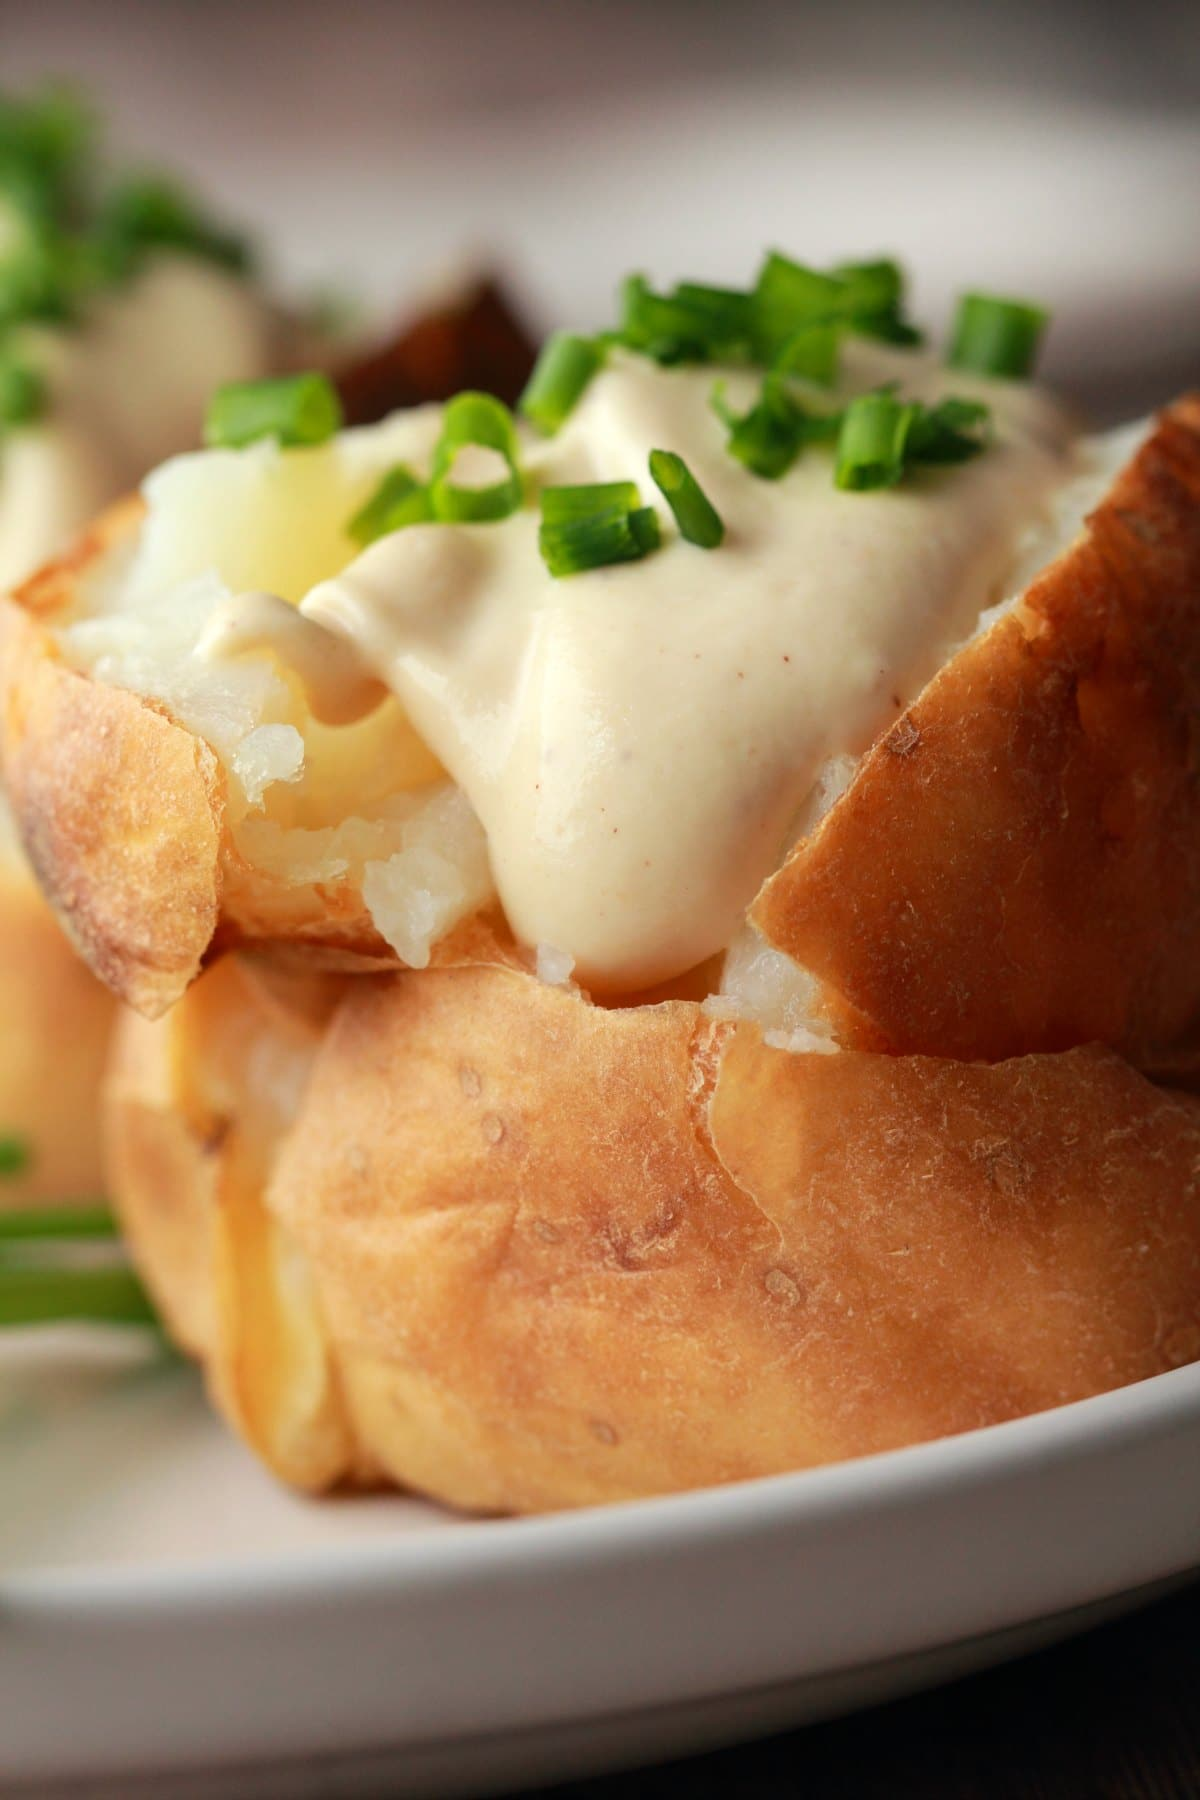 Baked potato topped with sour cream and chives.